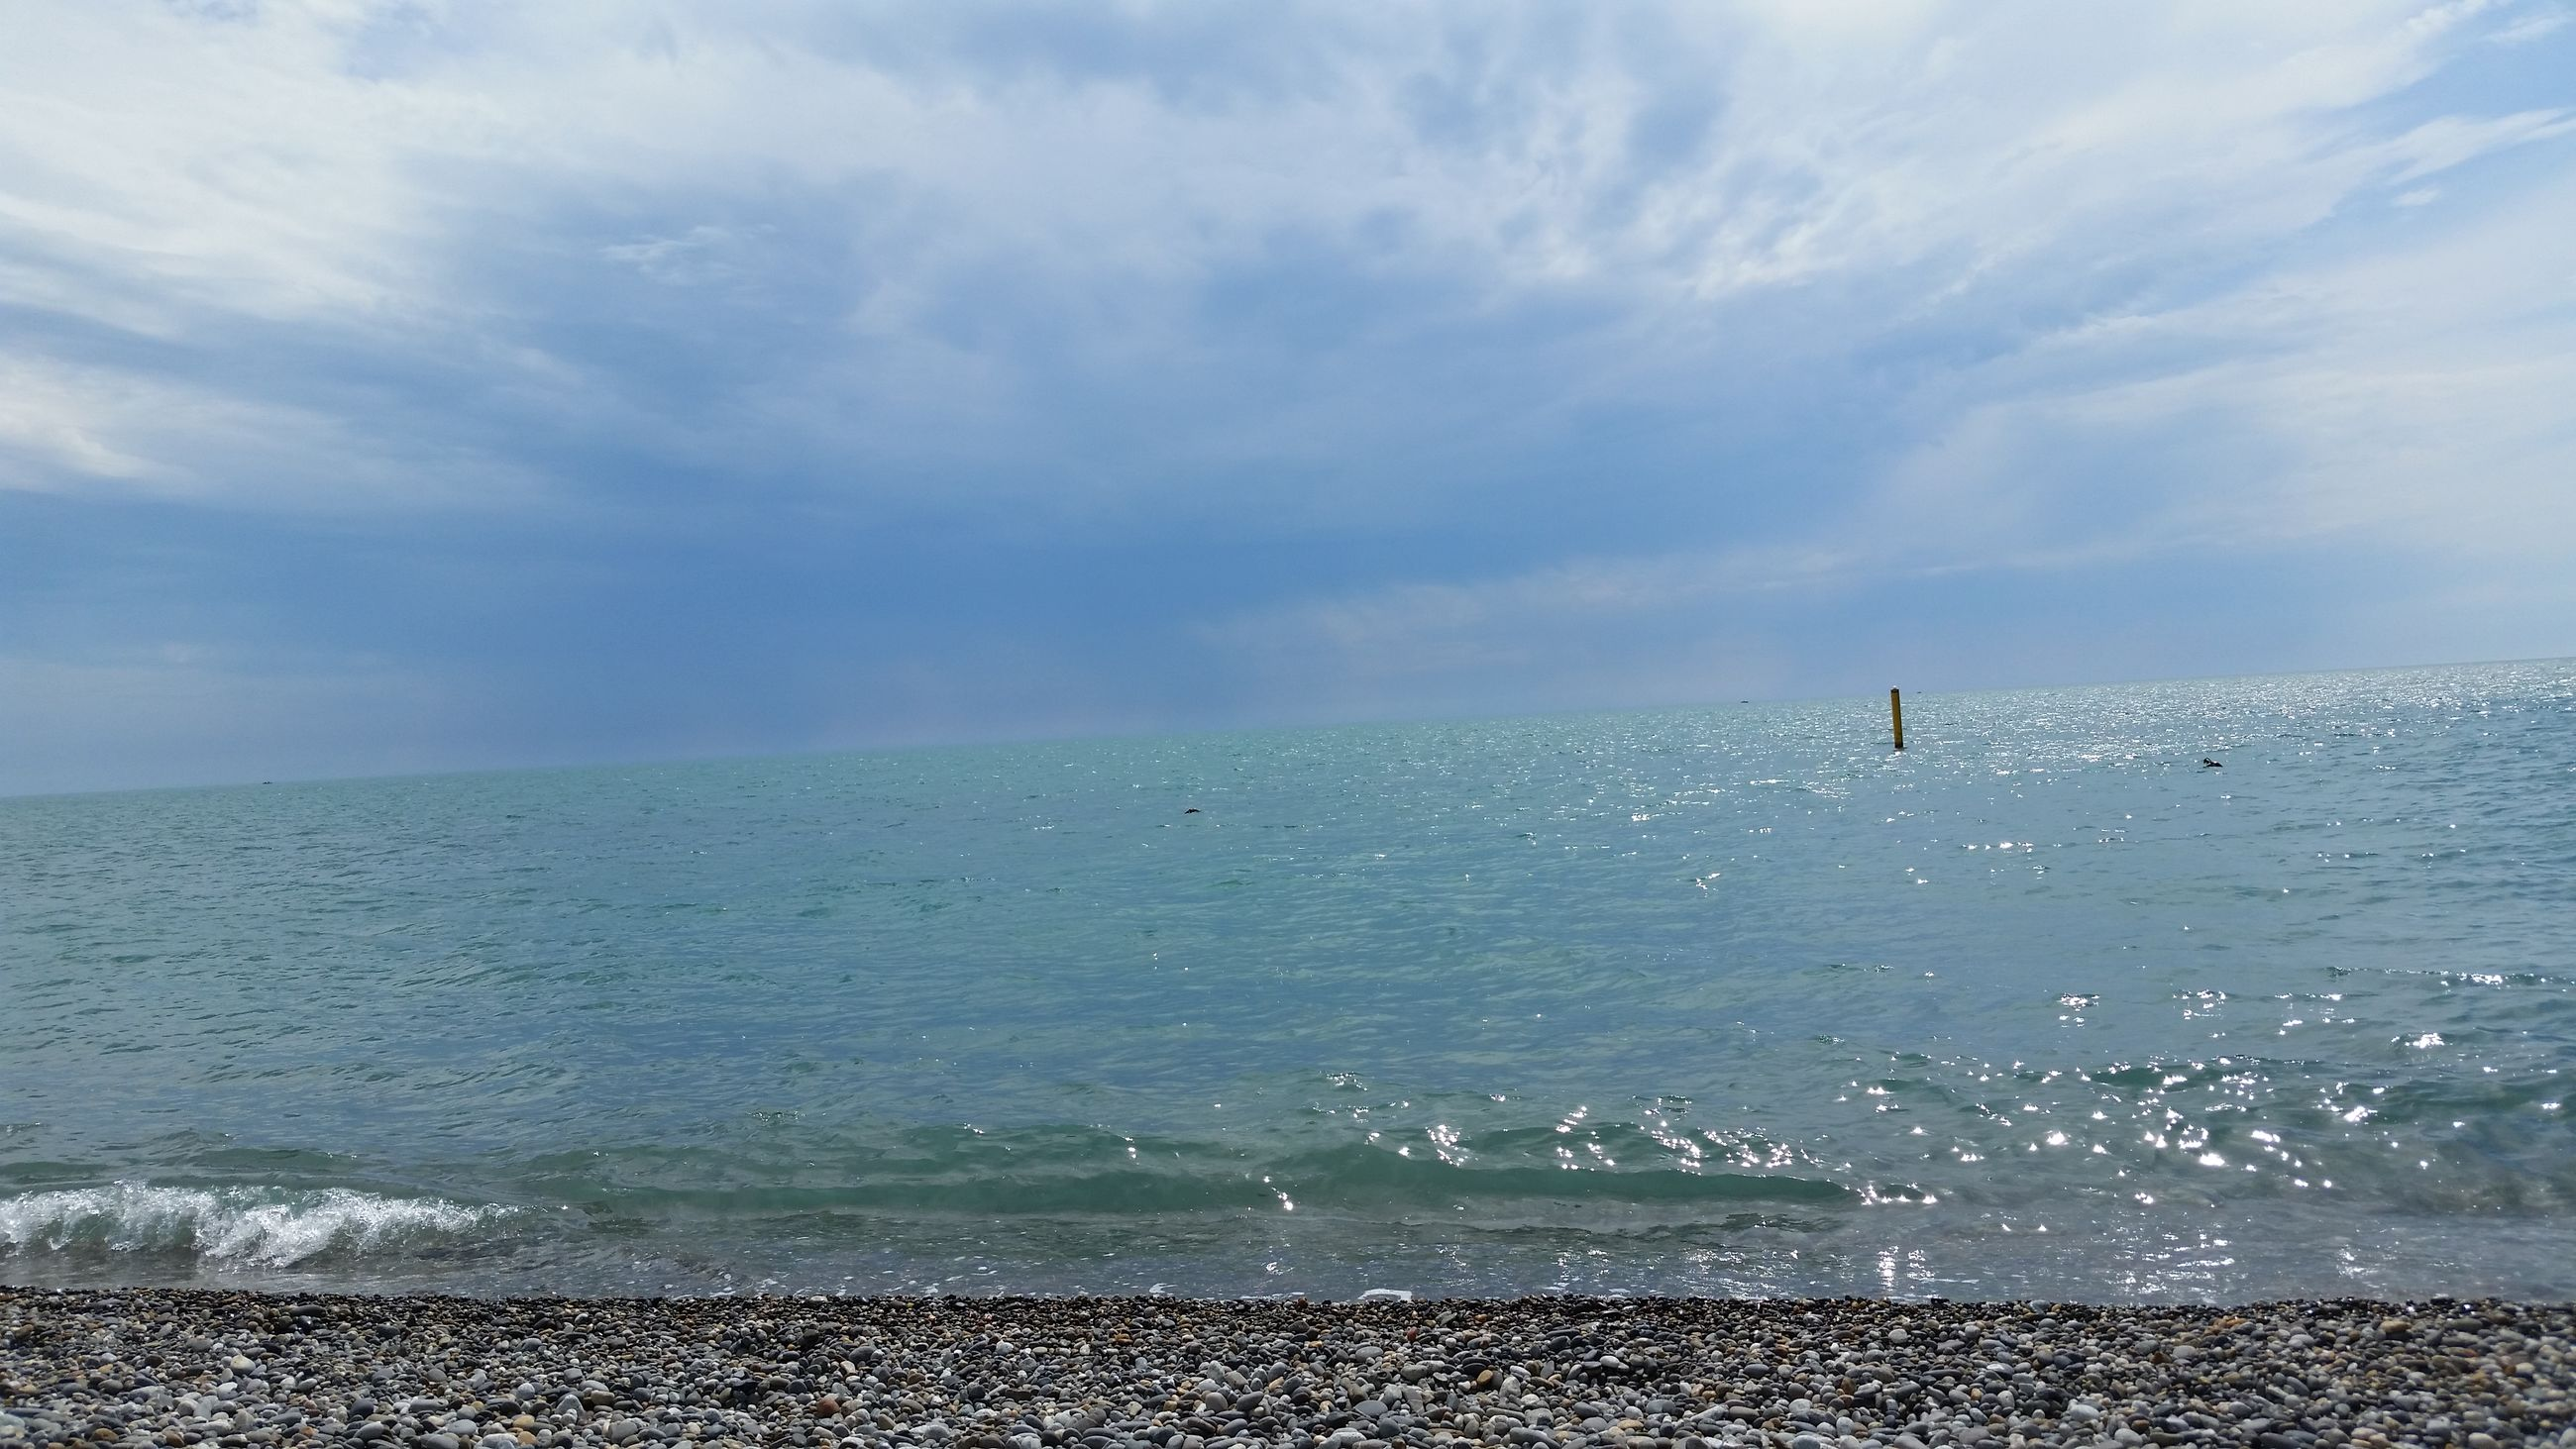 sea, water, beach, horizon over water, sky, scenics, shore, tranquil scene, beauty in nature, tranquility, sand, cloud - sky, nature, idyllic, cloud, cloudy, wave, coastline, seascape, outdoors